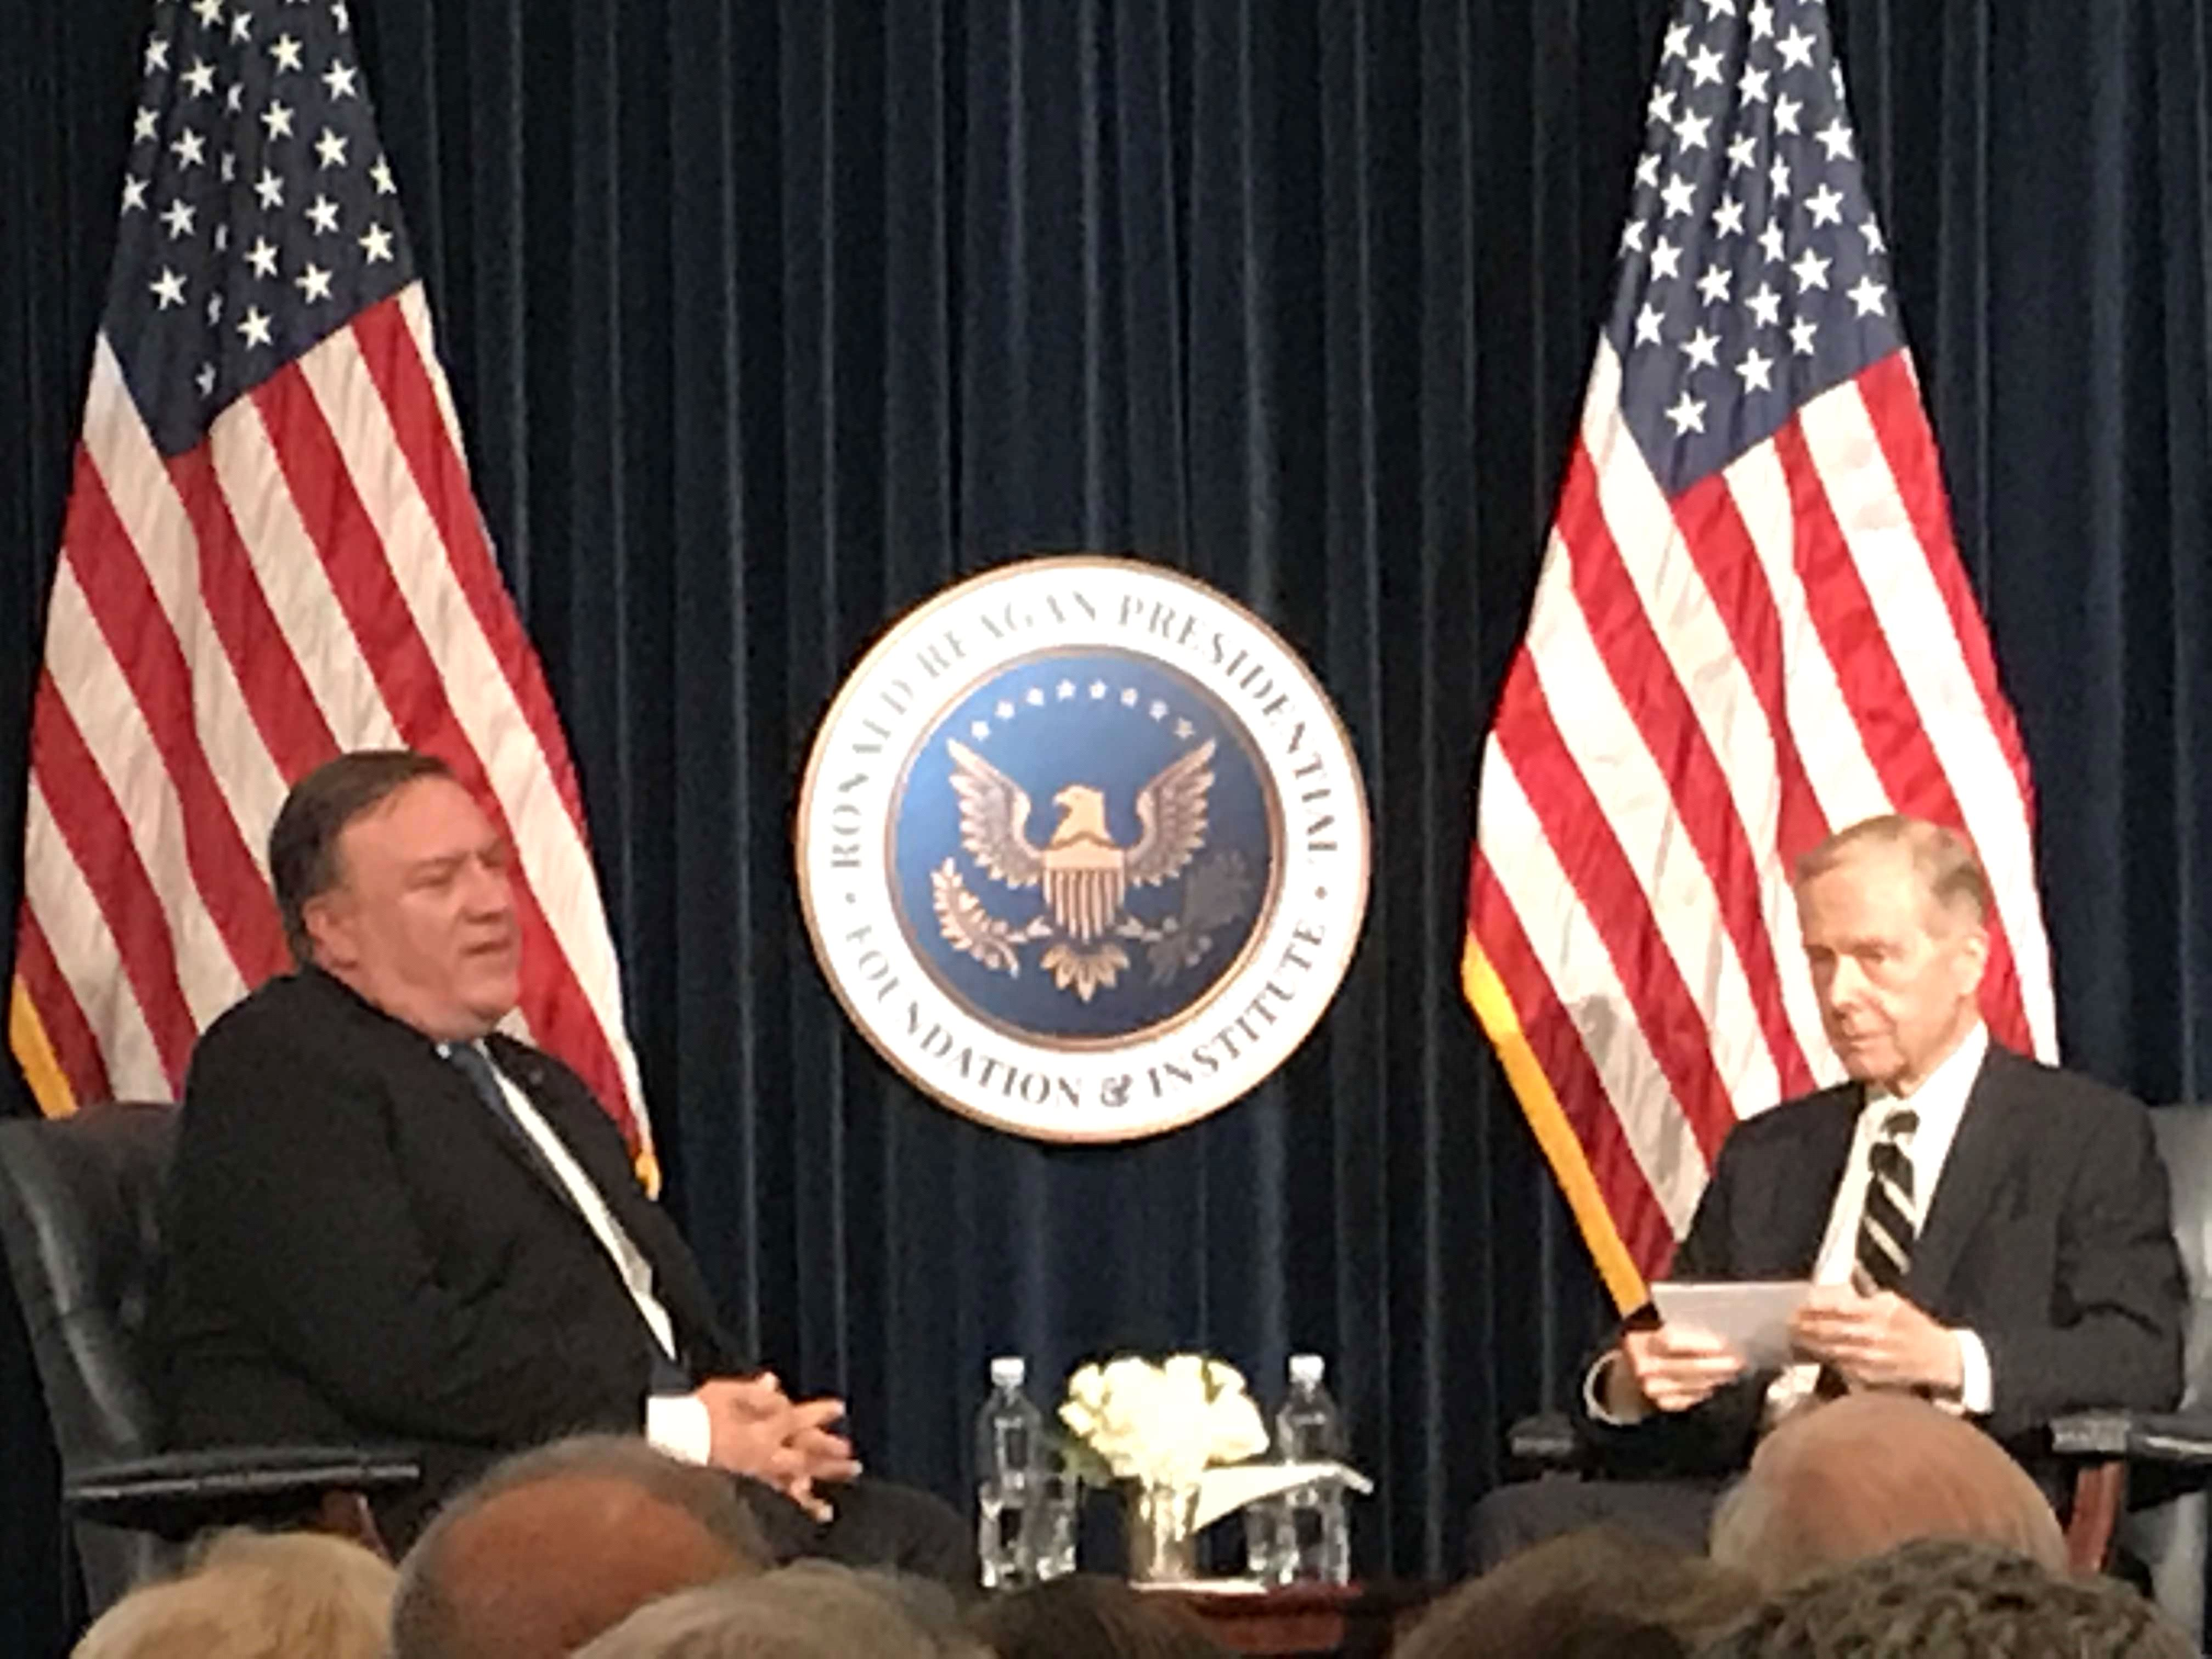 On Stage Q&A Secretary Mike Pompeo with former California Governor Pete Wilson (Photo credit: Nurit Geenger)